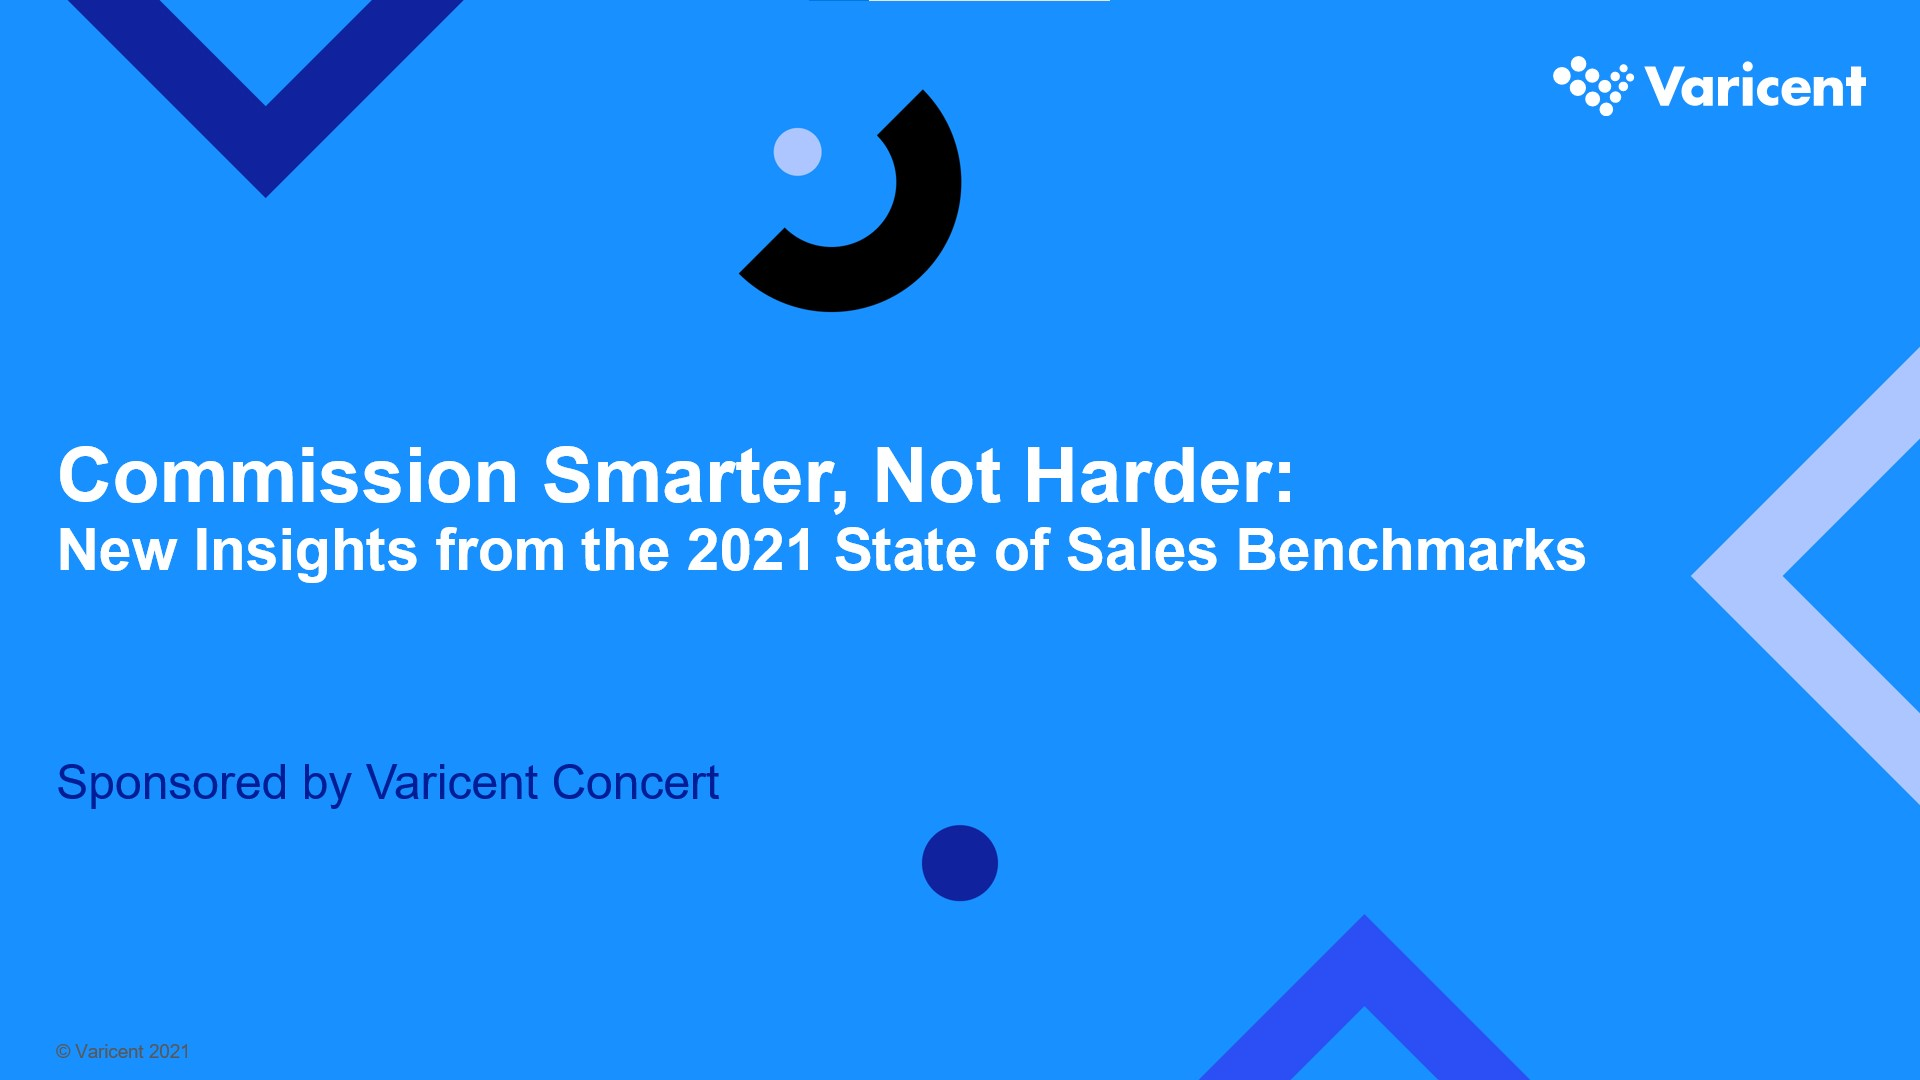 New Insights from the 2021 State of Sales Benchmarks